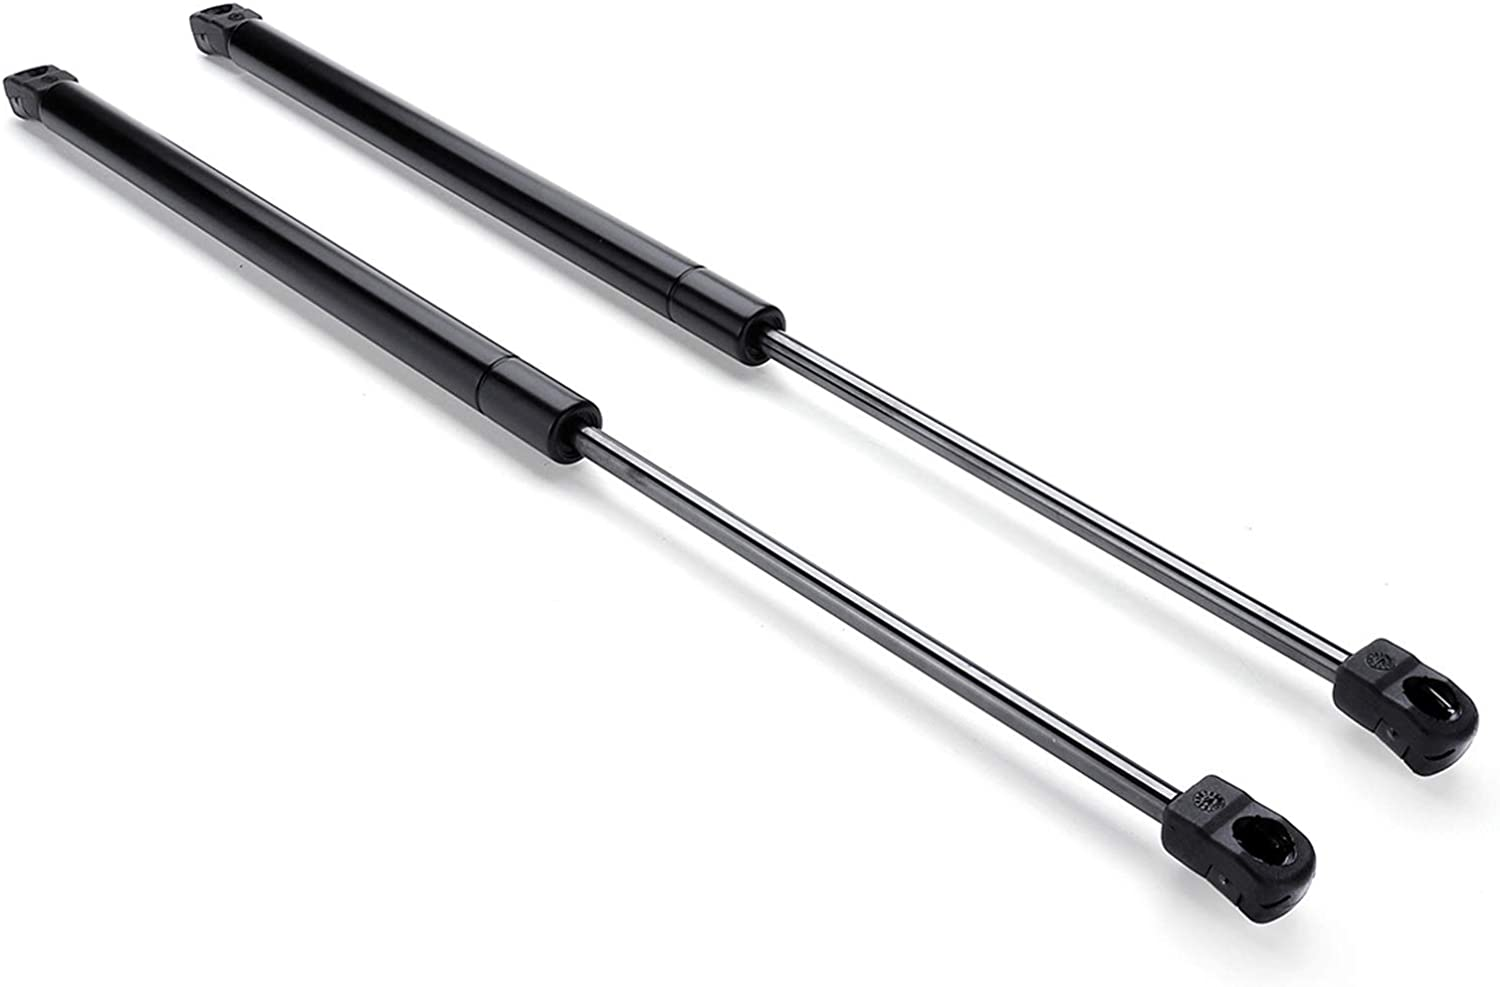 CGDD All stores are sold Lift Support Struts Import Durable1 Damper Shock Hood Pair 51.5cm